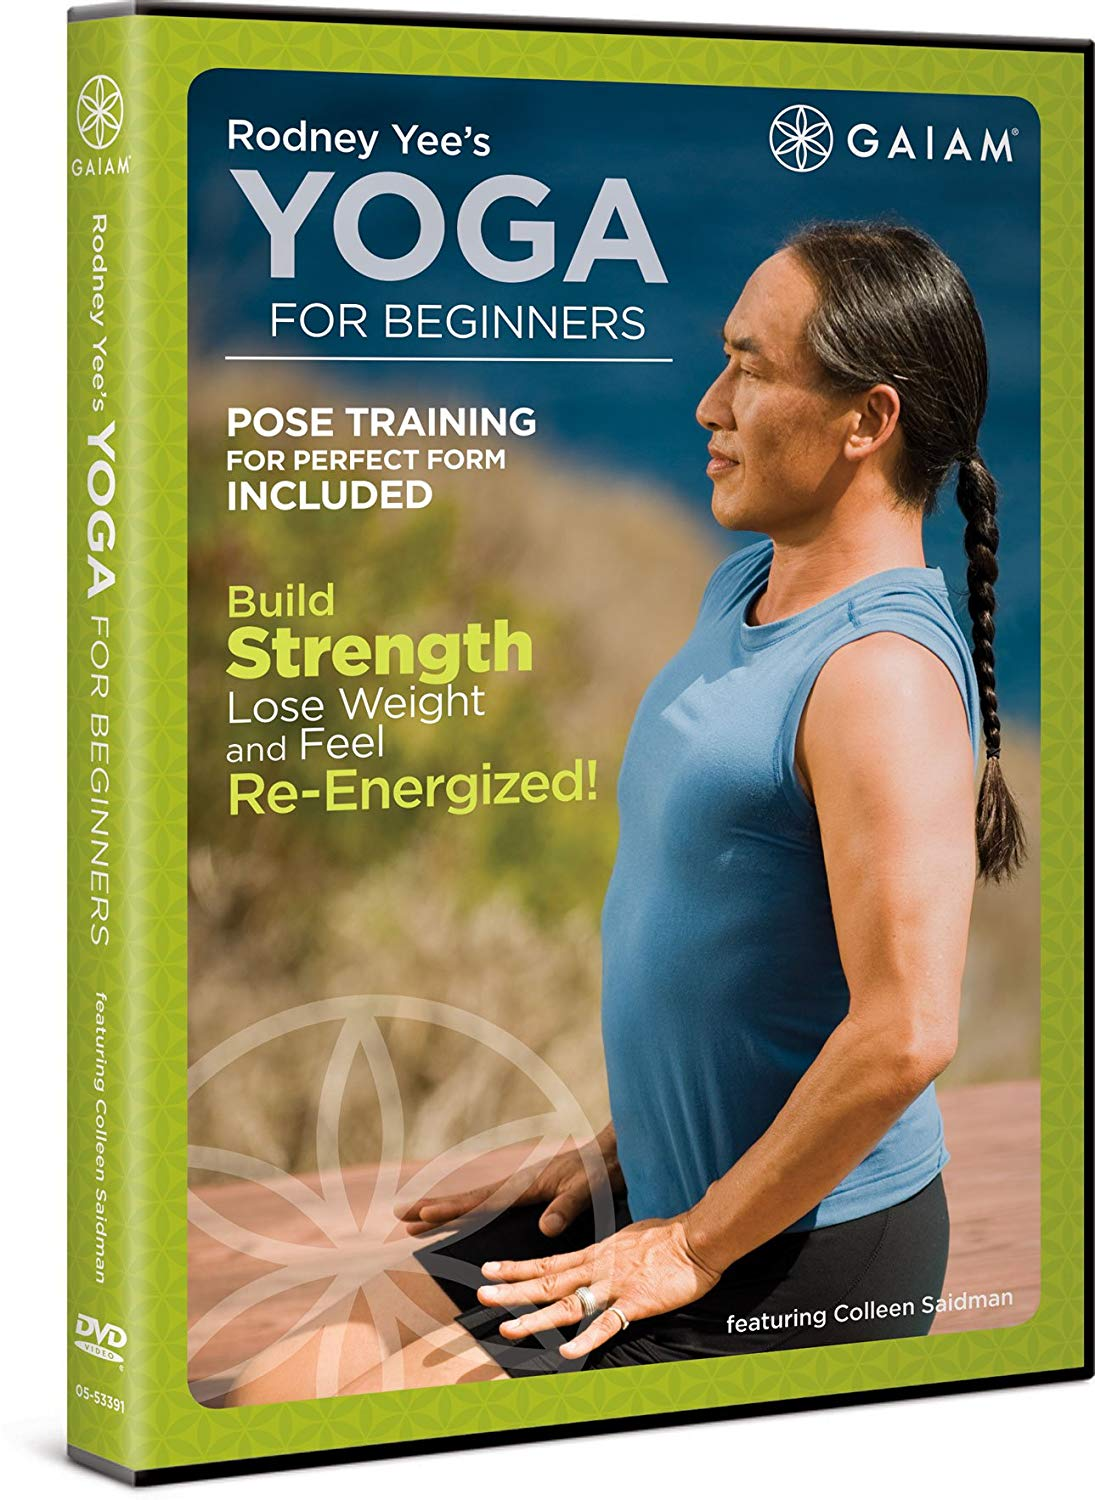 [DVD] Rodney Yee's Yoga for Beginners - Get that long, lean yoga look while centering your mind and improving posture and fl exibility. Yoga masters Rodney Yee and Colleen Saidman demonstrate all the basic poses in a detailed 40-minute Pose Training session. Learn accurate alignment, technique and how to avoid the mistakes they see most often. Then, put those lessons into practice with two full-length workouts. The 20-minute Morning Workout will get your day off to a refreshing start, helping you awaken and energize. The 15-minute Evening Workout restores, relaxes and soothes. Choose full, in-depth guidance as you get familiar with the routine or opt for minimal conversation so you can take in the sights and sounds of beautiful Molokai, Hawaii.